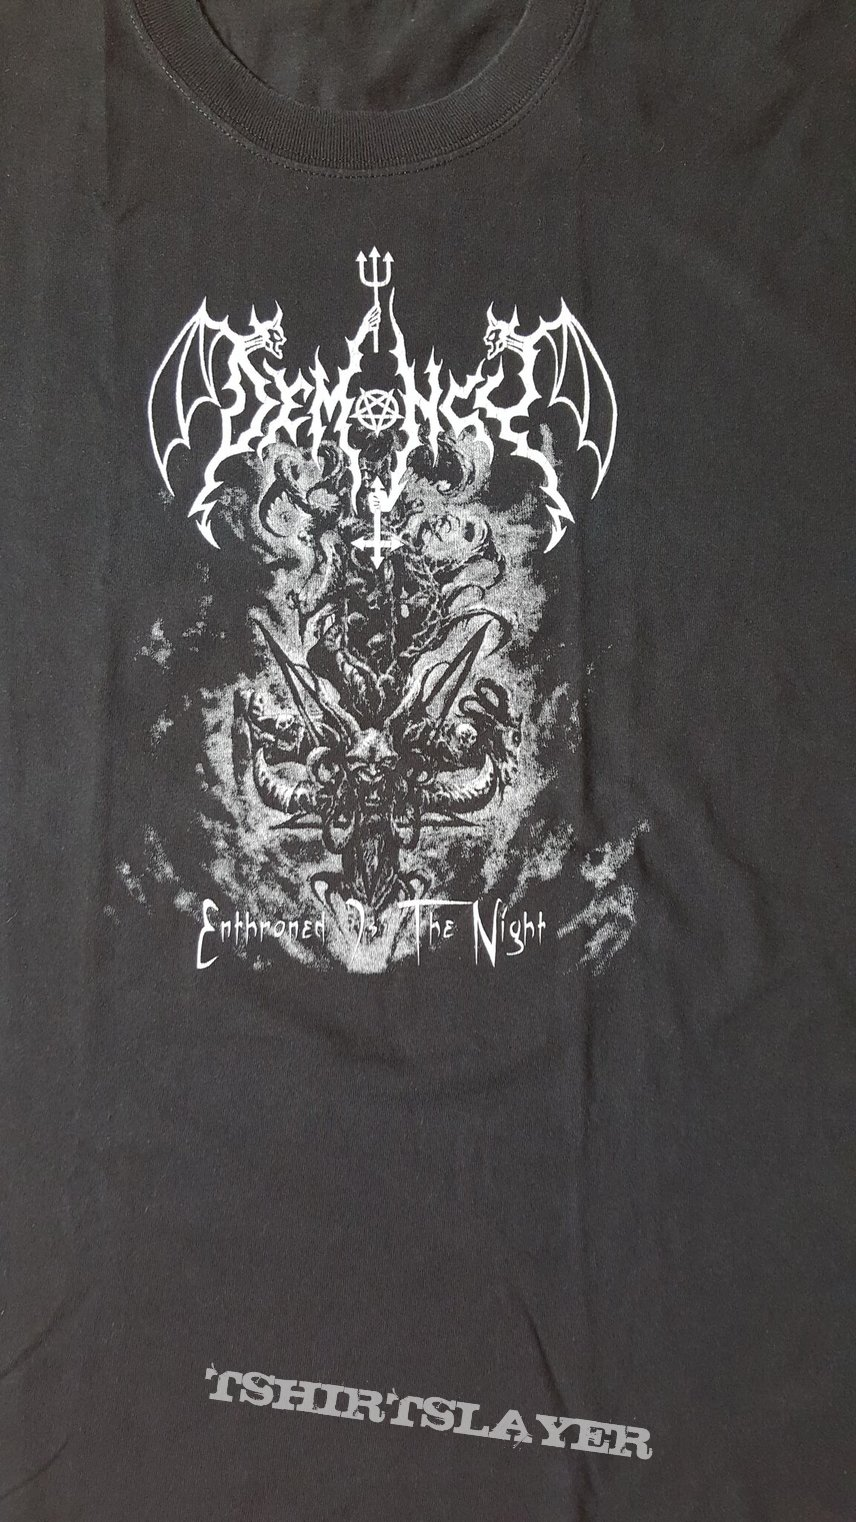 Demoncy - Enthroned Is The Night